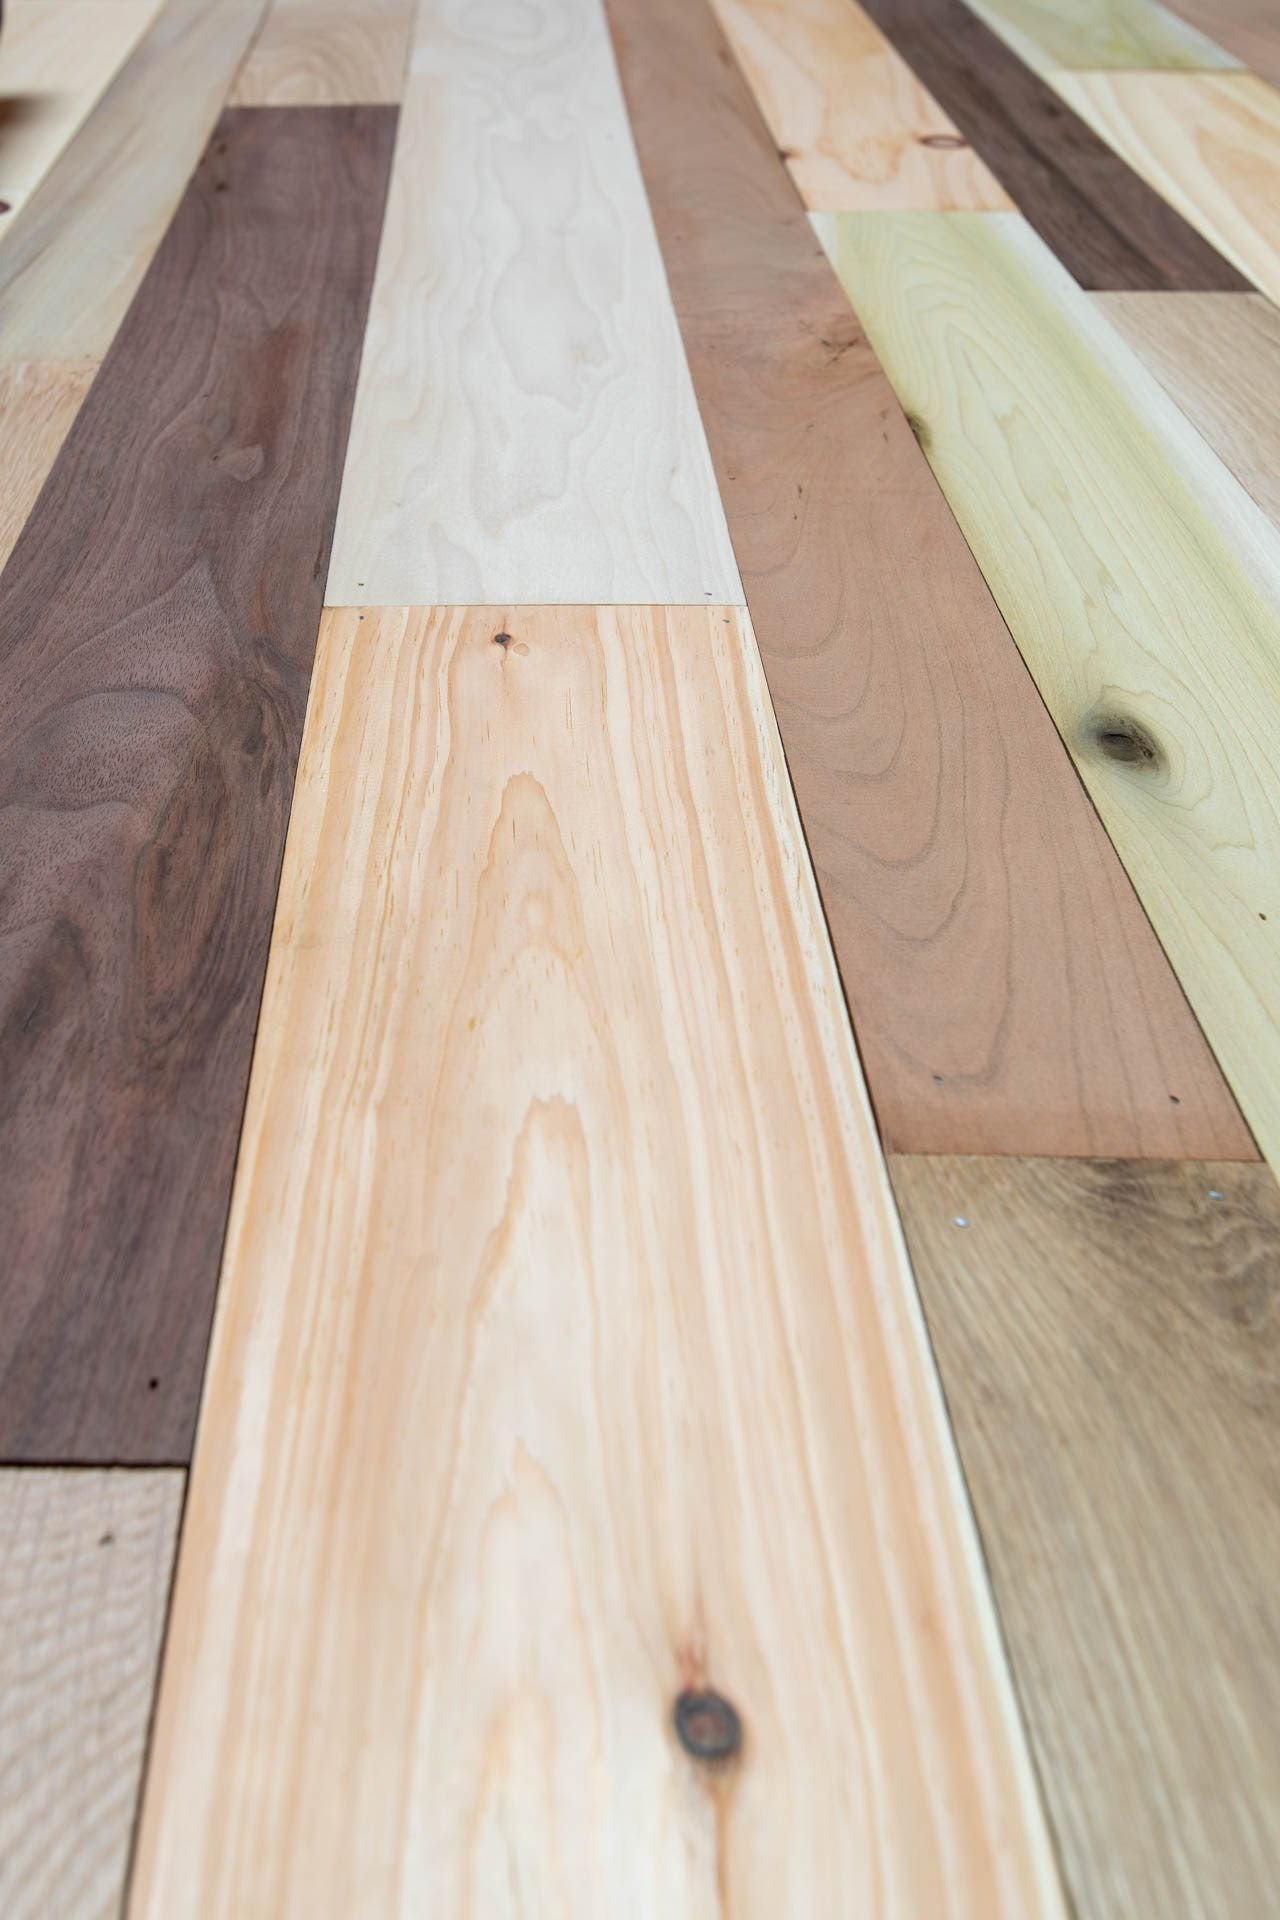 Premium Artisan Planks Wood Kit (10 sq. ft. bundle)